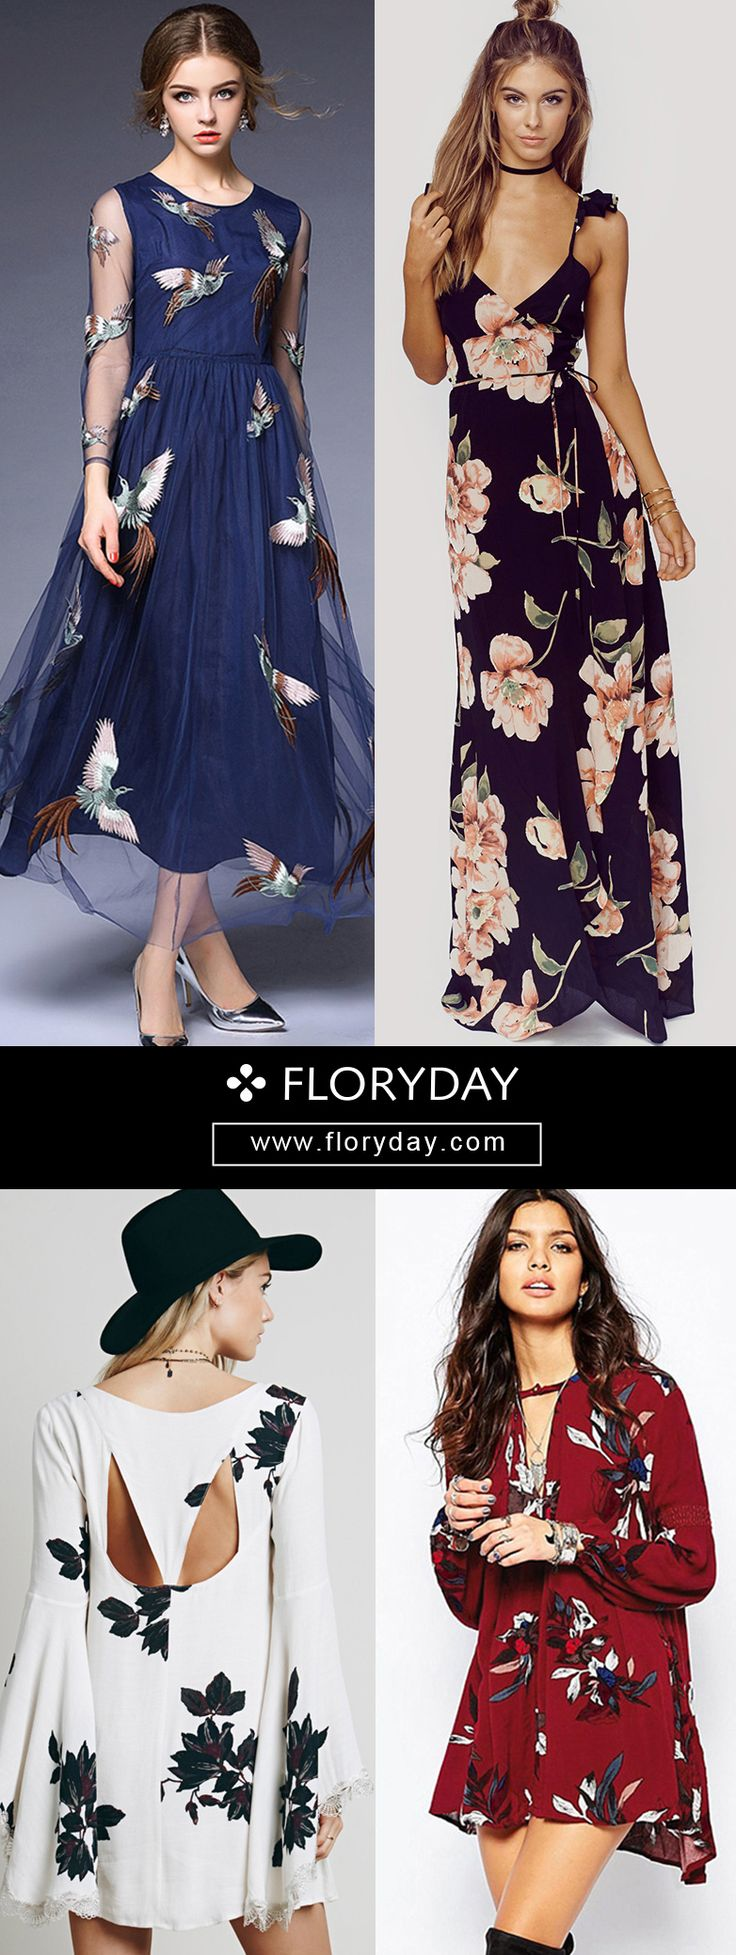 Latest Womens Fashion Clothing Dresses: Shop The Latest Trends In Women's Clothing At Floryday